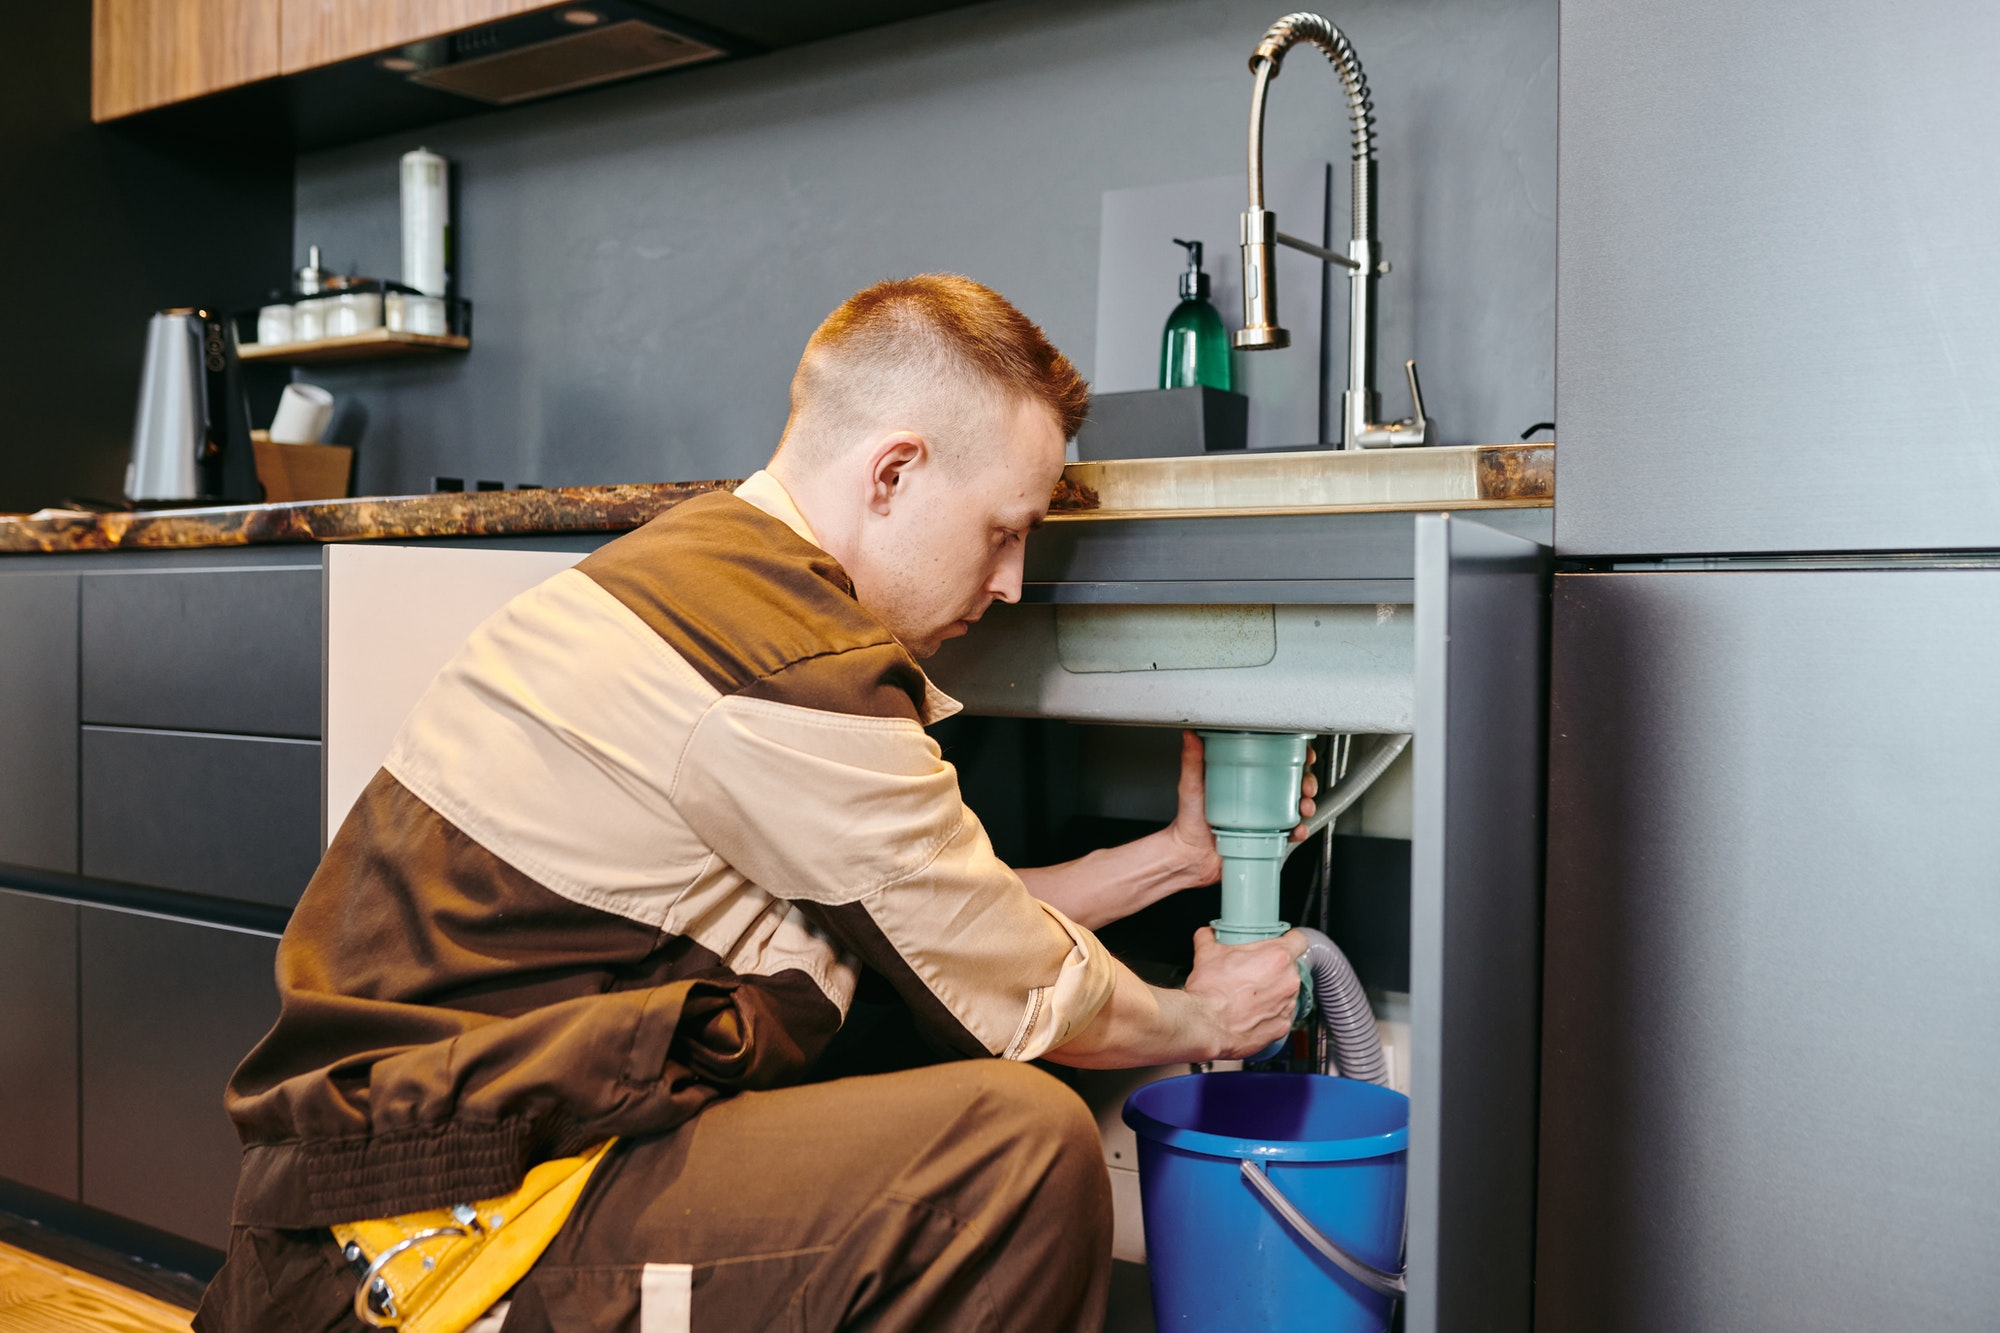 A man in uniform checking plumbing equipment after repairing in the kitchen